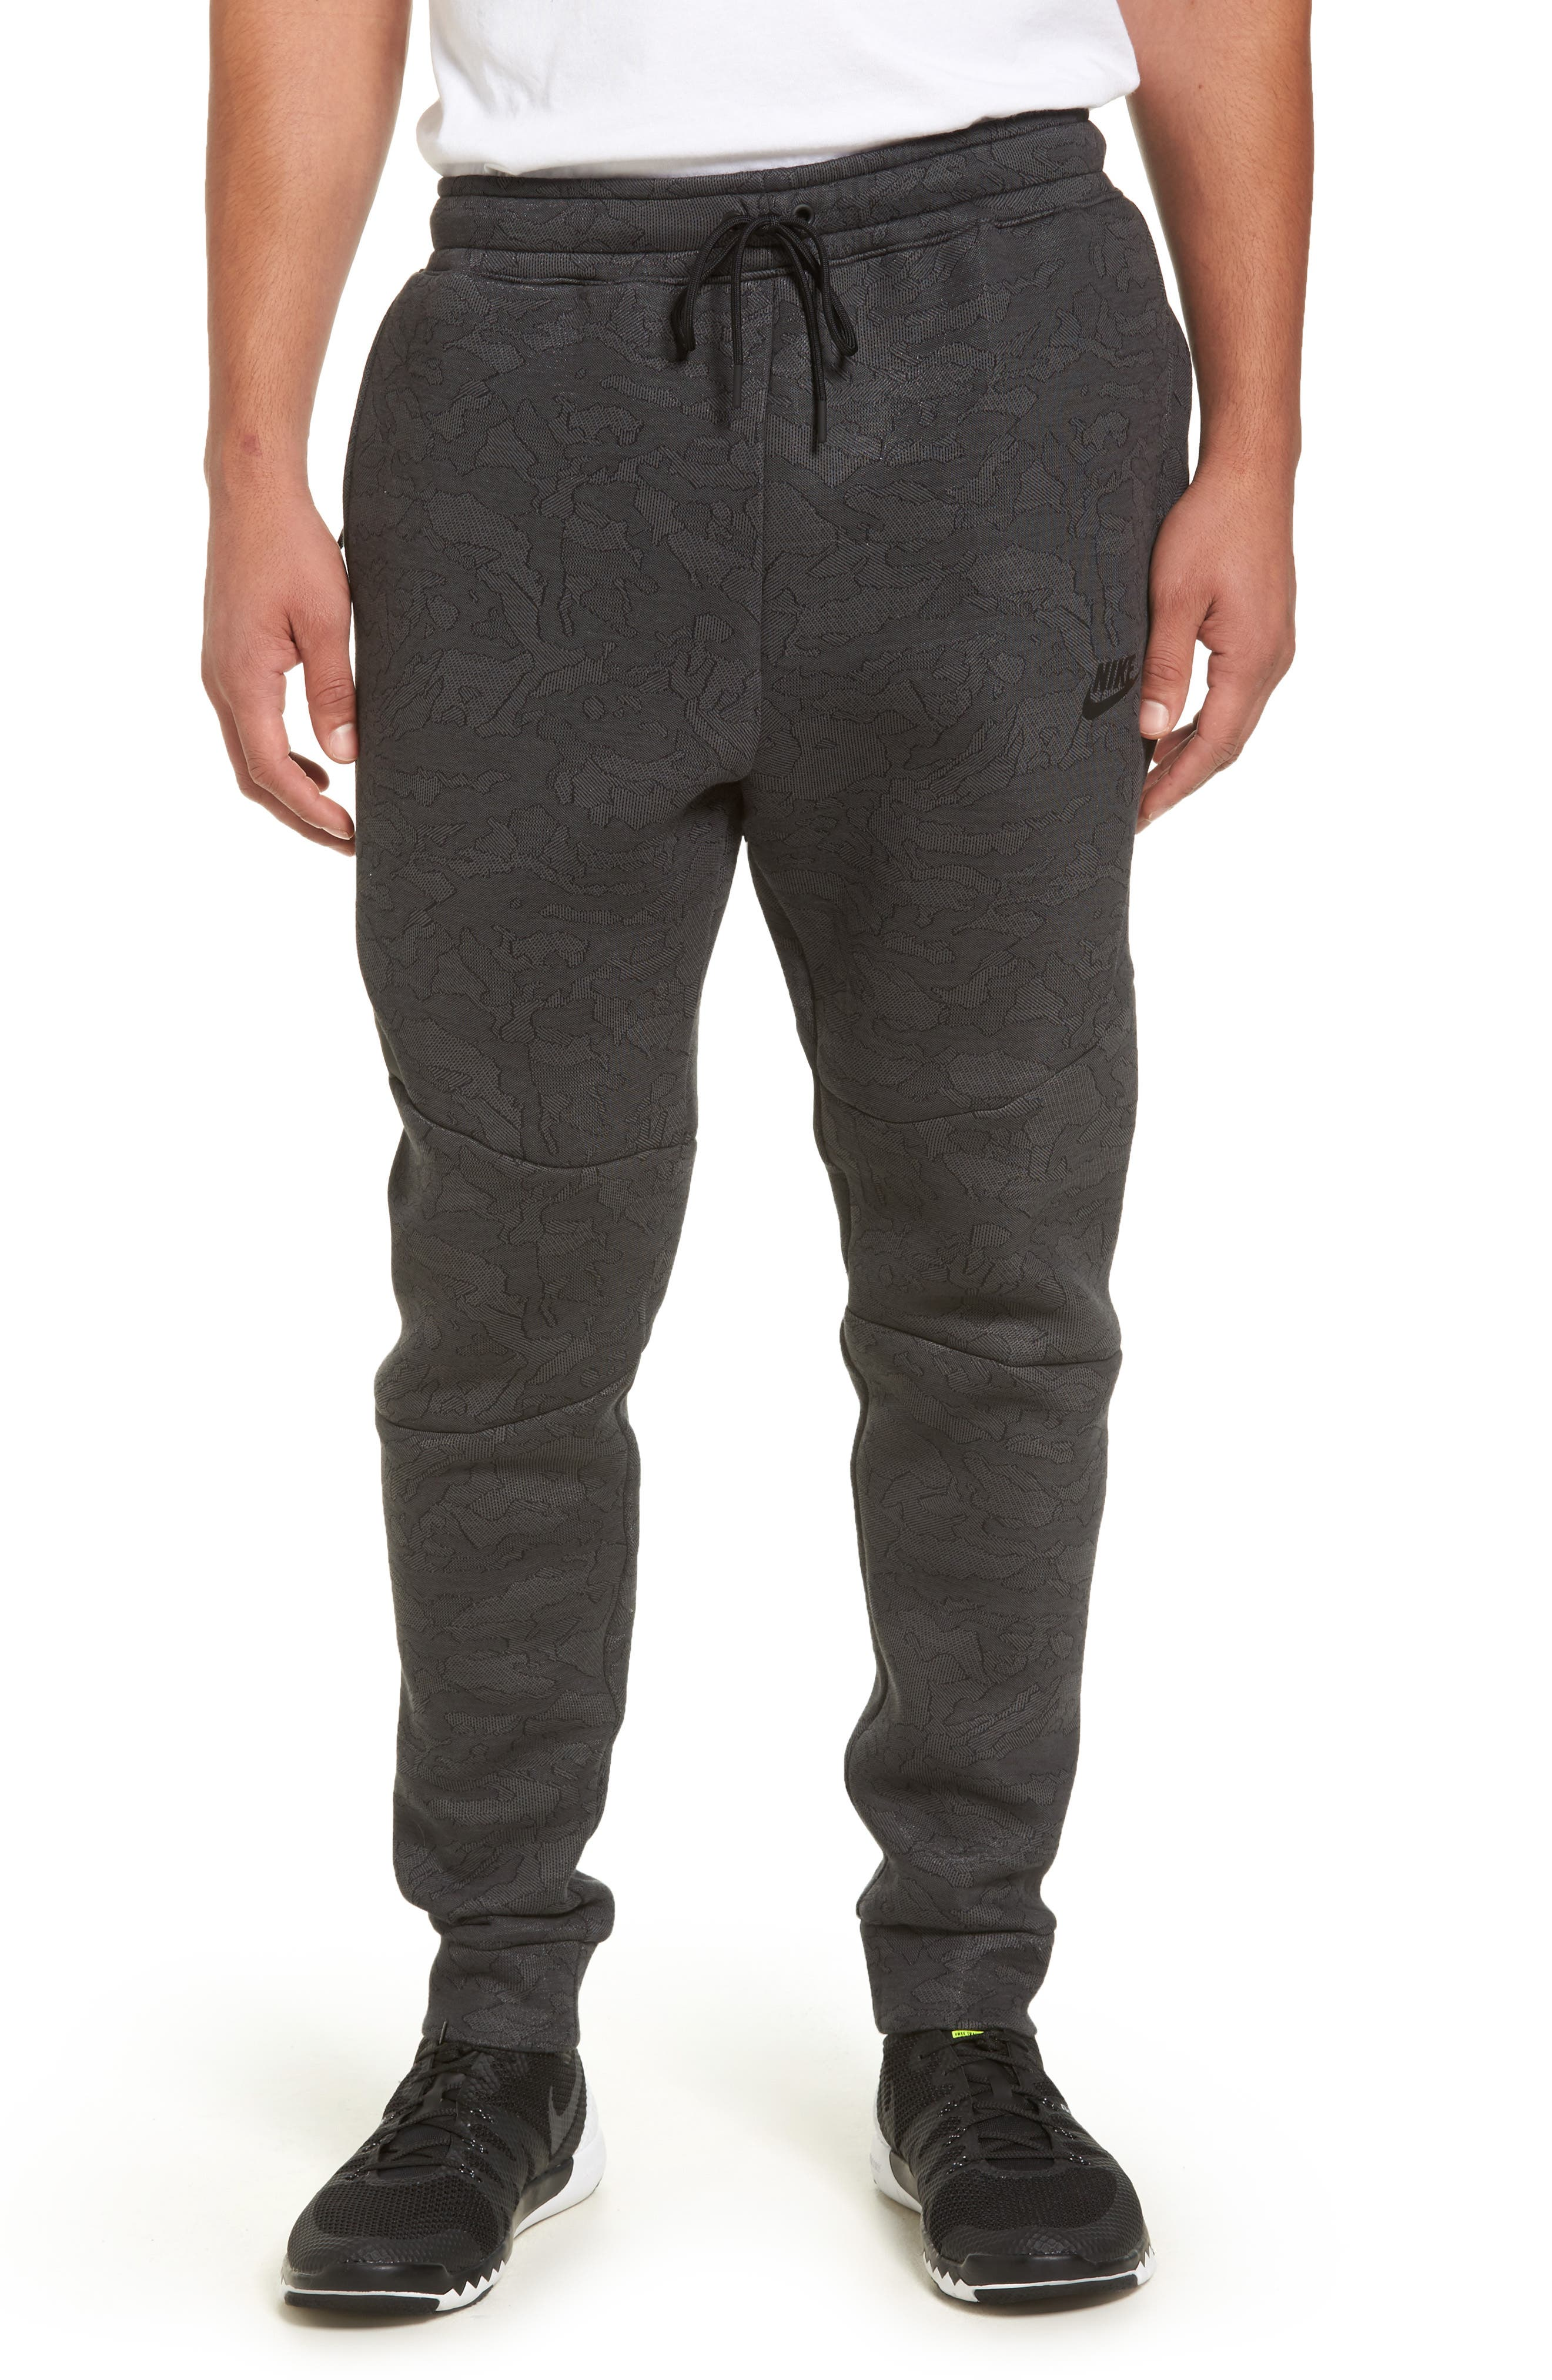 Tech Fleece Pants,                             Main thumbnail 1, color,                             Midnight Fog/ Black